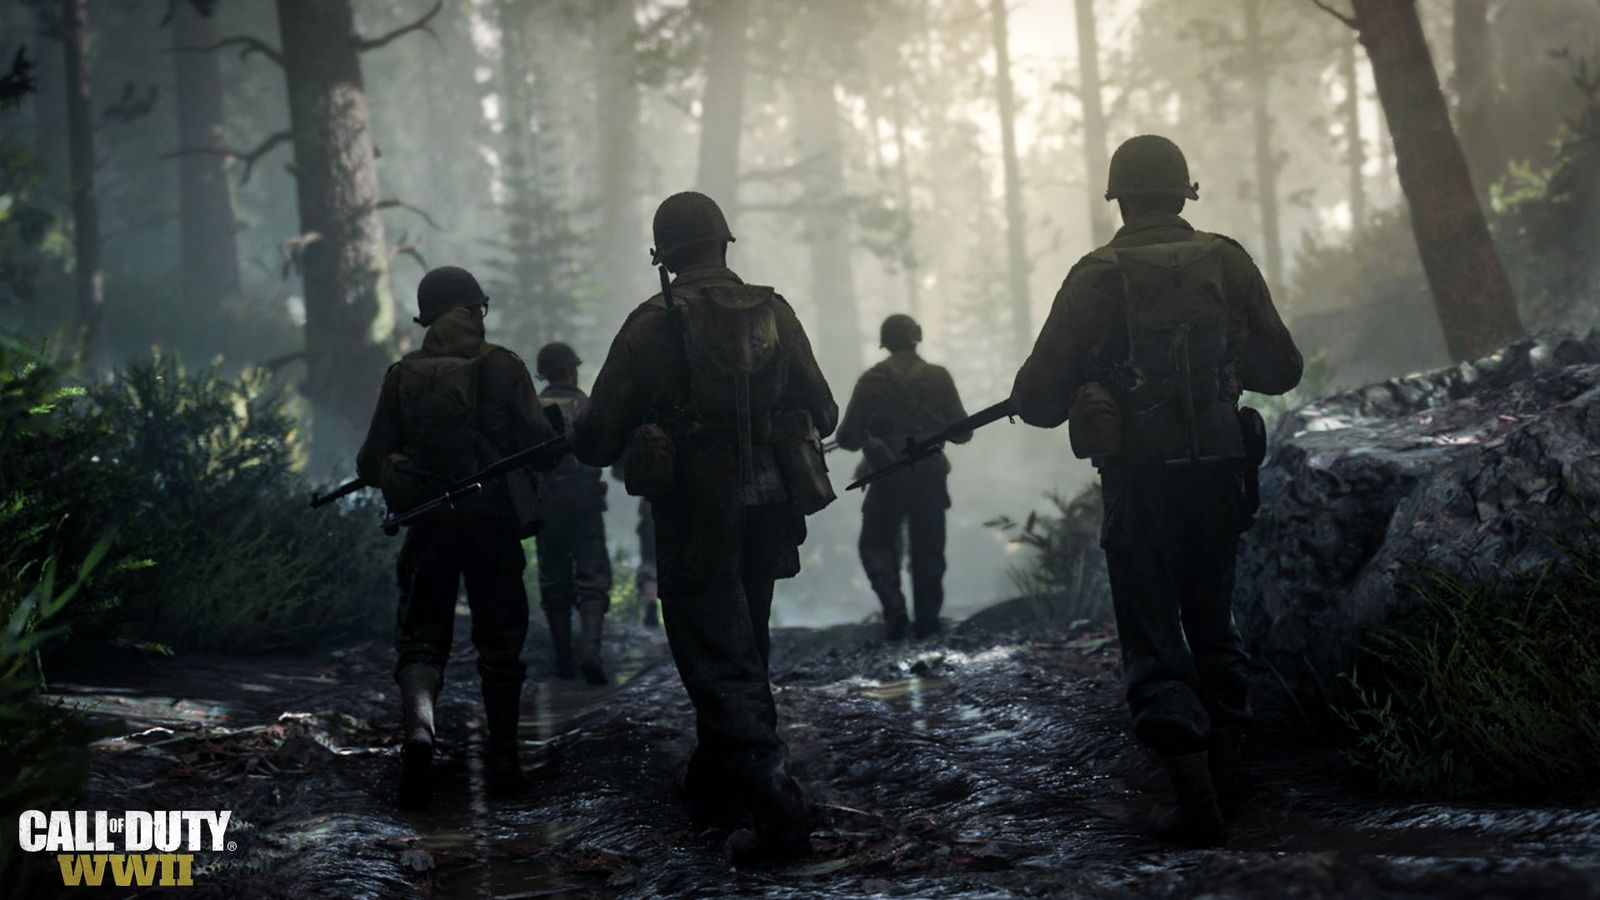 Watch the Call of Duty: WWII livestream right here